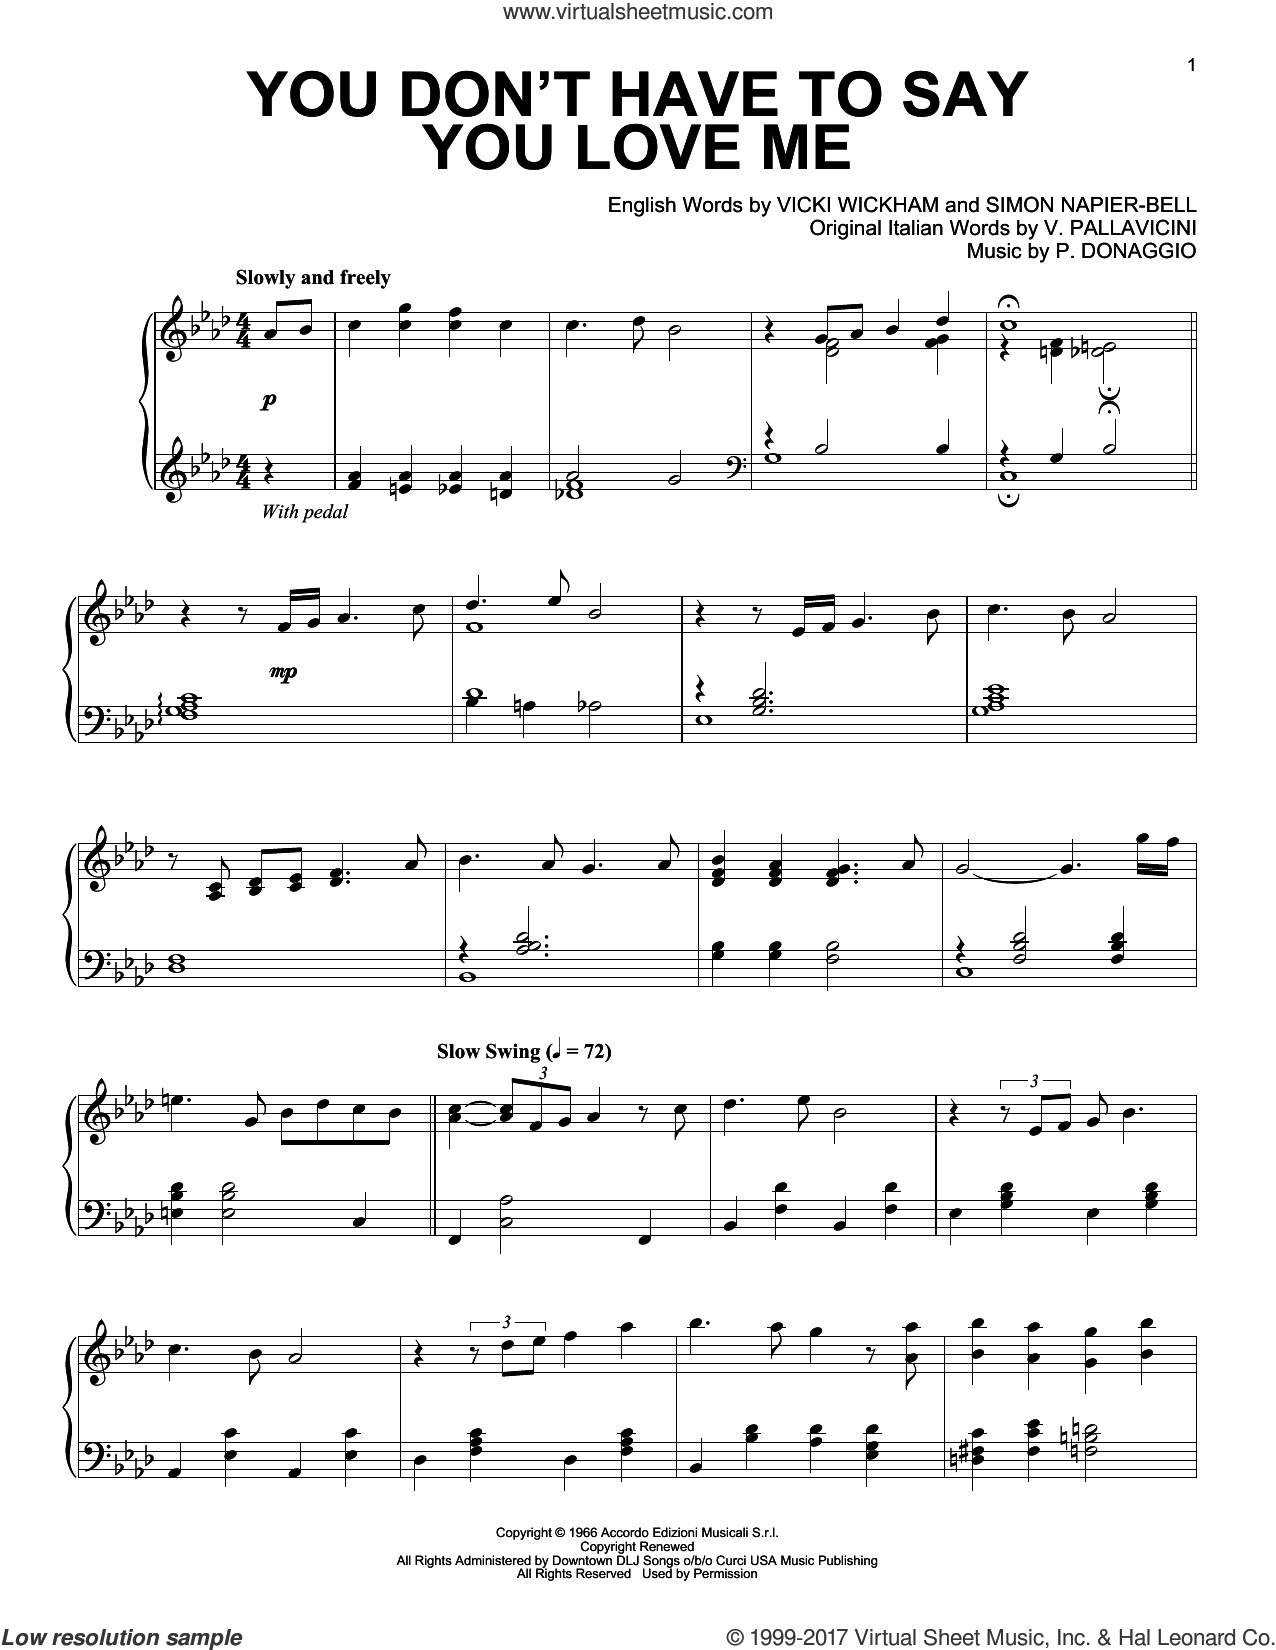 You Don't Have To Say You Love Me sheet music for piano solo by Elvis Presley, P. Donaggio, Simon Napier-Bell, V. Pallavicini and Vicki Wickham, intermediate skill level